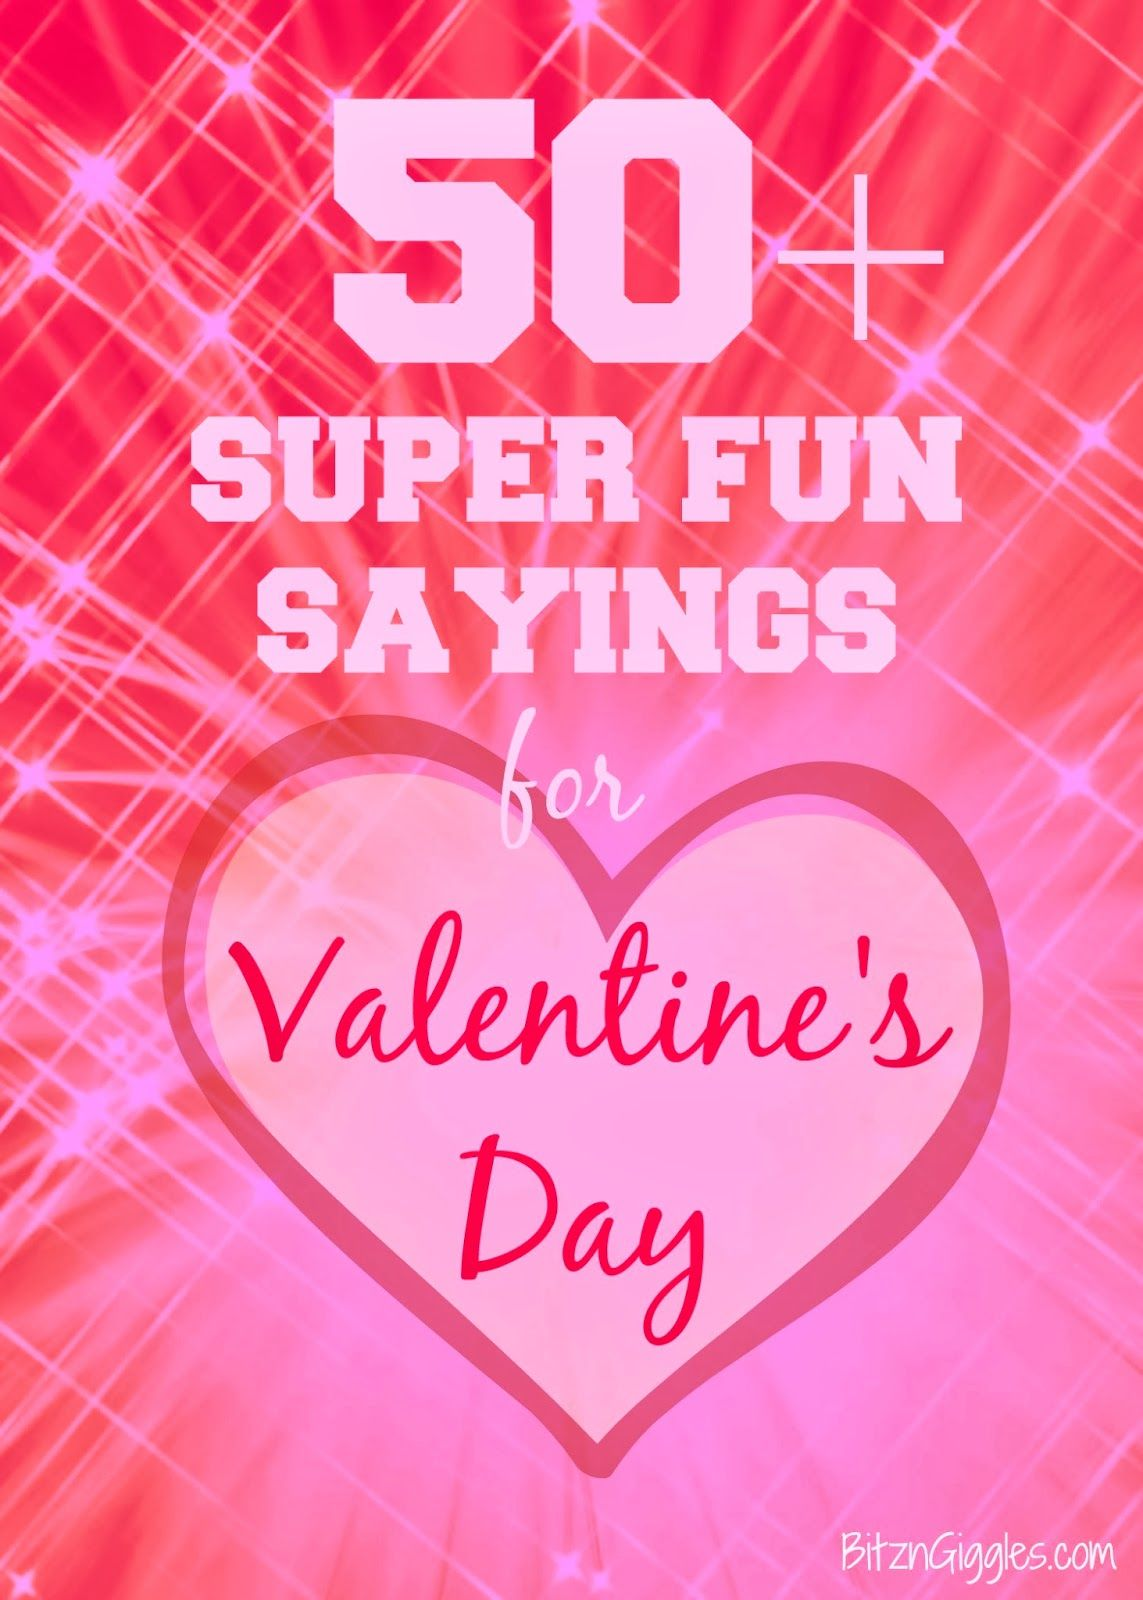 50+ Super Fun Sayings for Valentine's Day Valentines